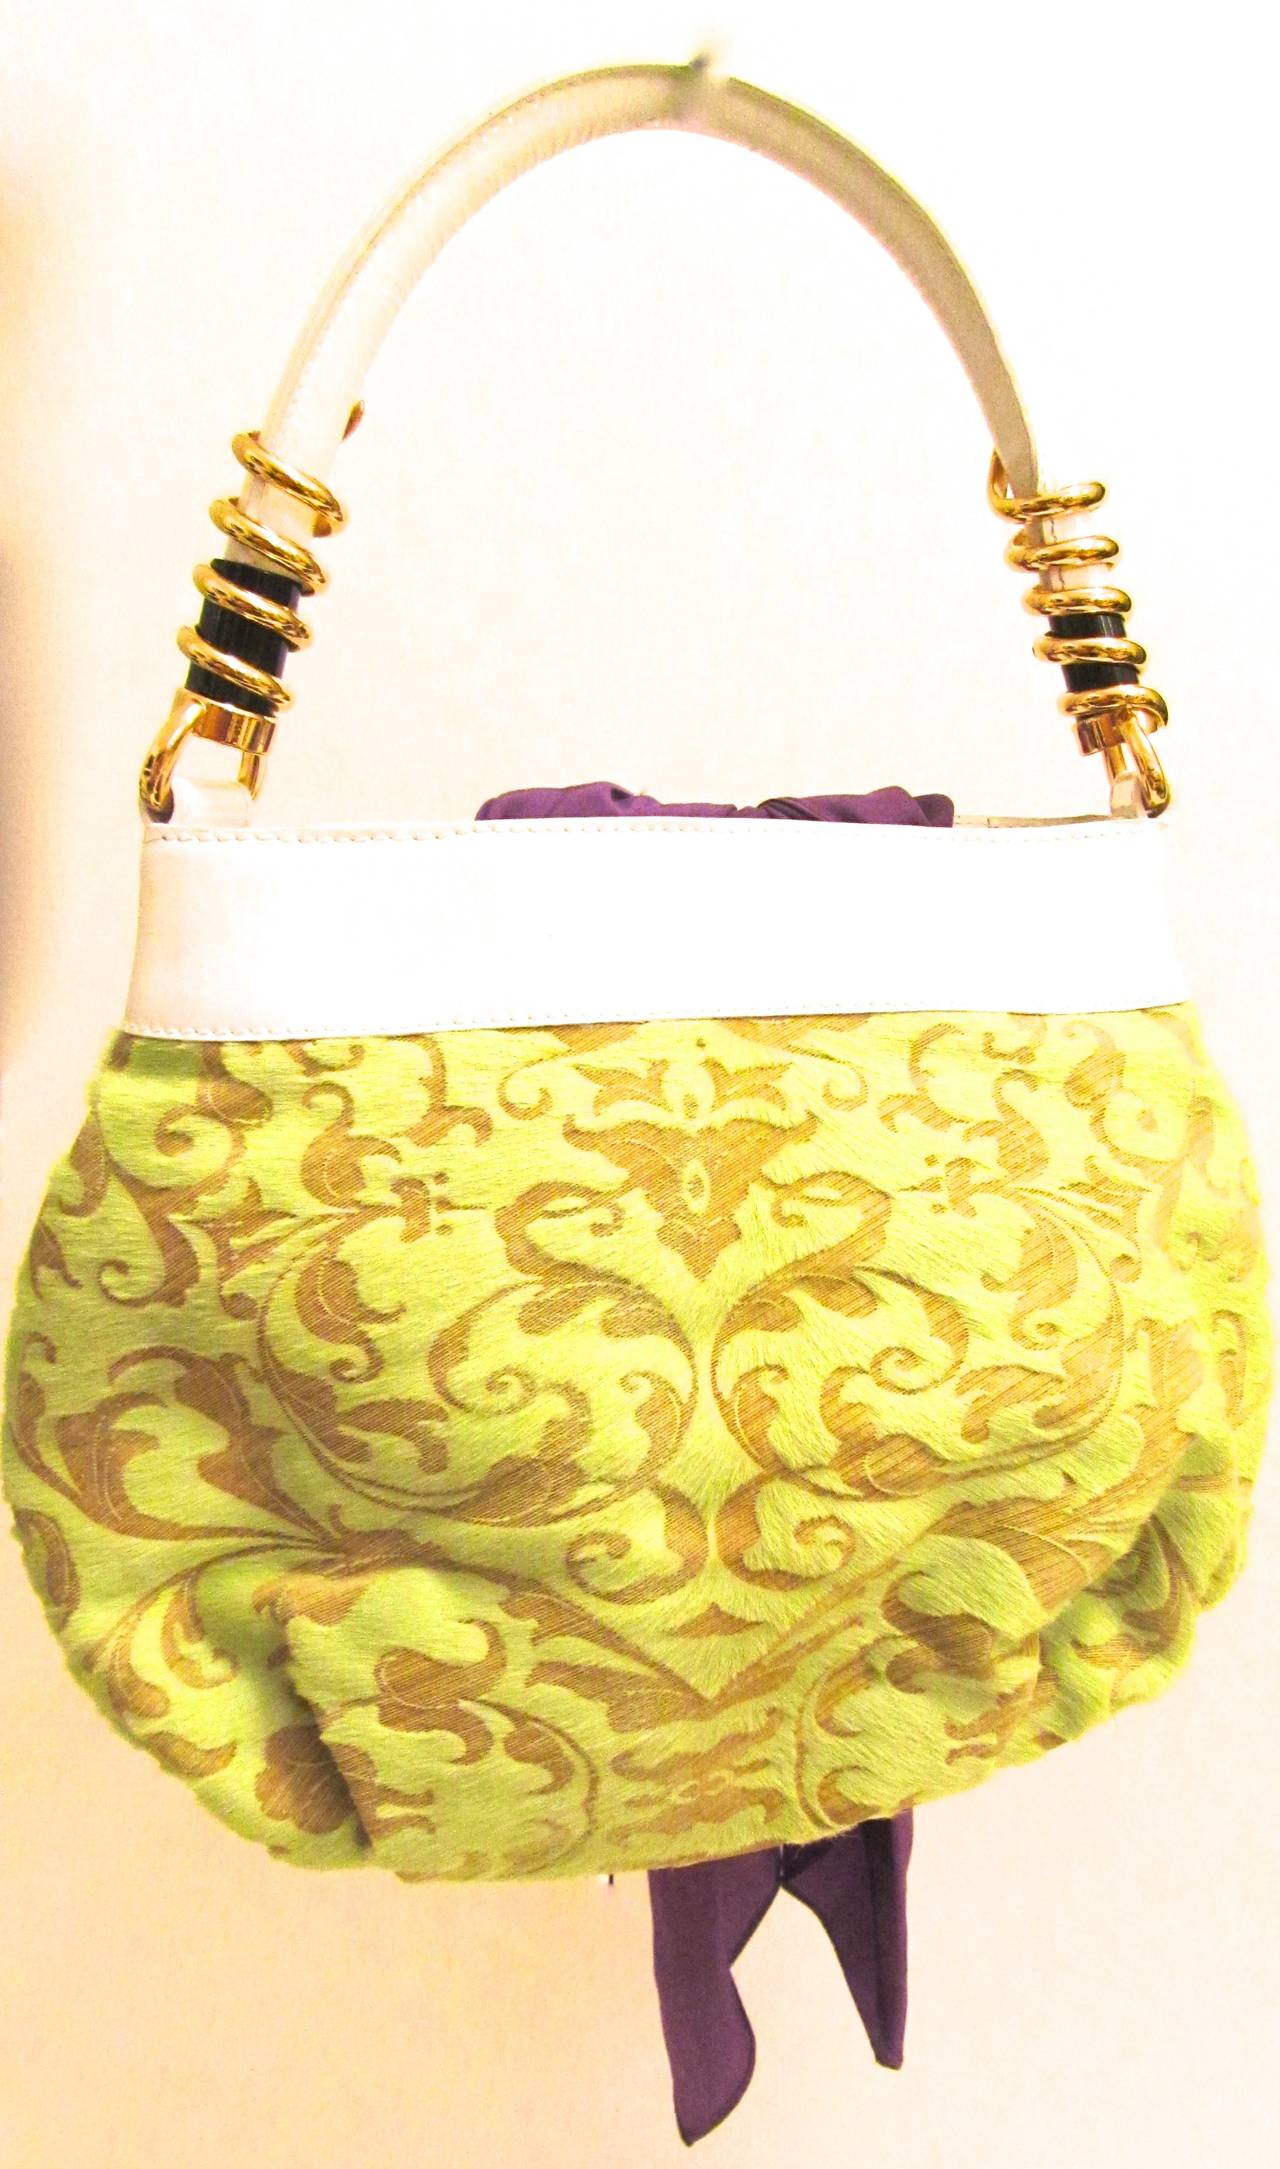 Yellow De Grisogono Geneve Couture Hand Bag - Green, White, and Purple For Sale